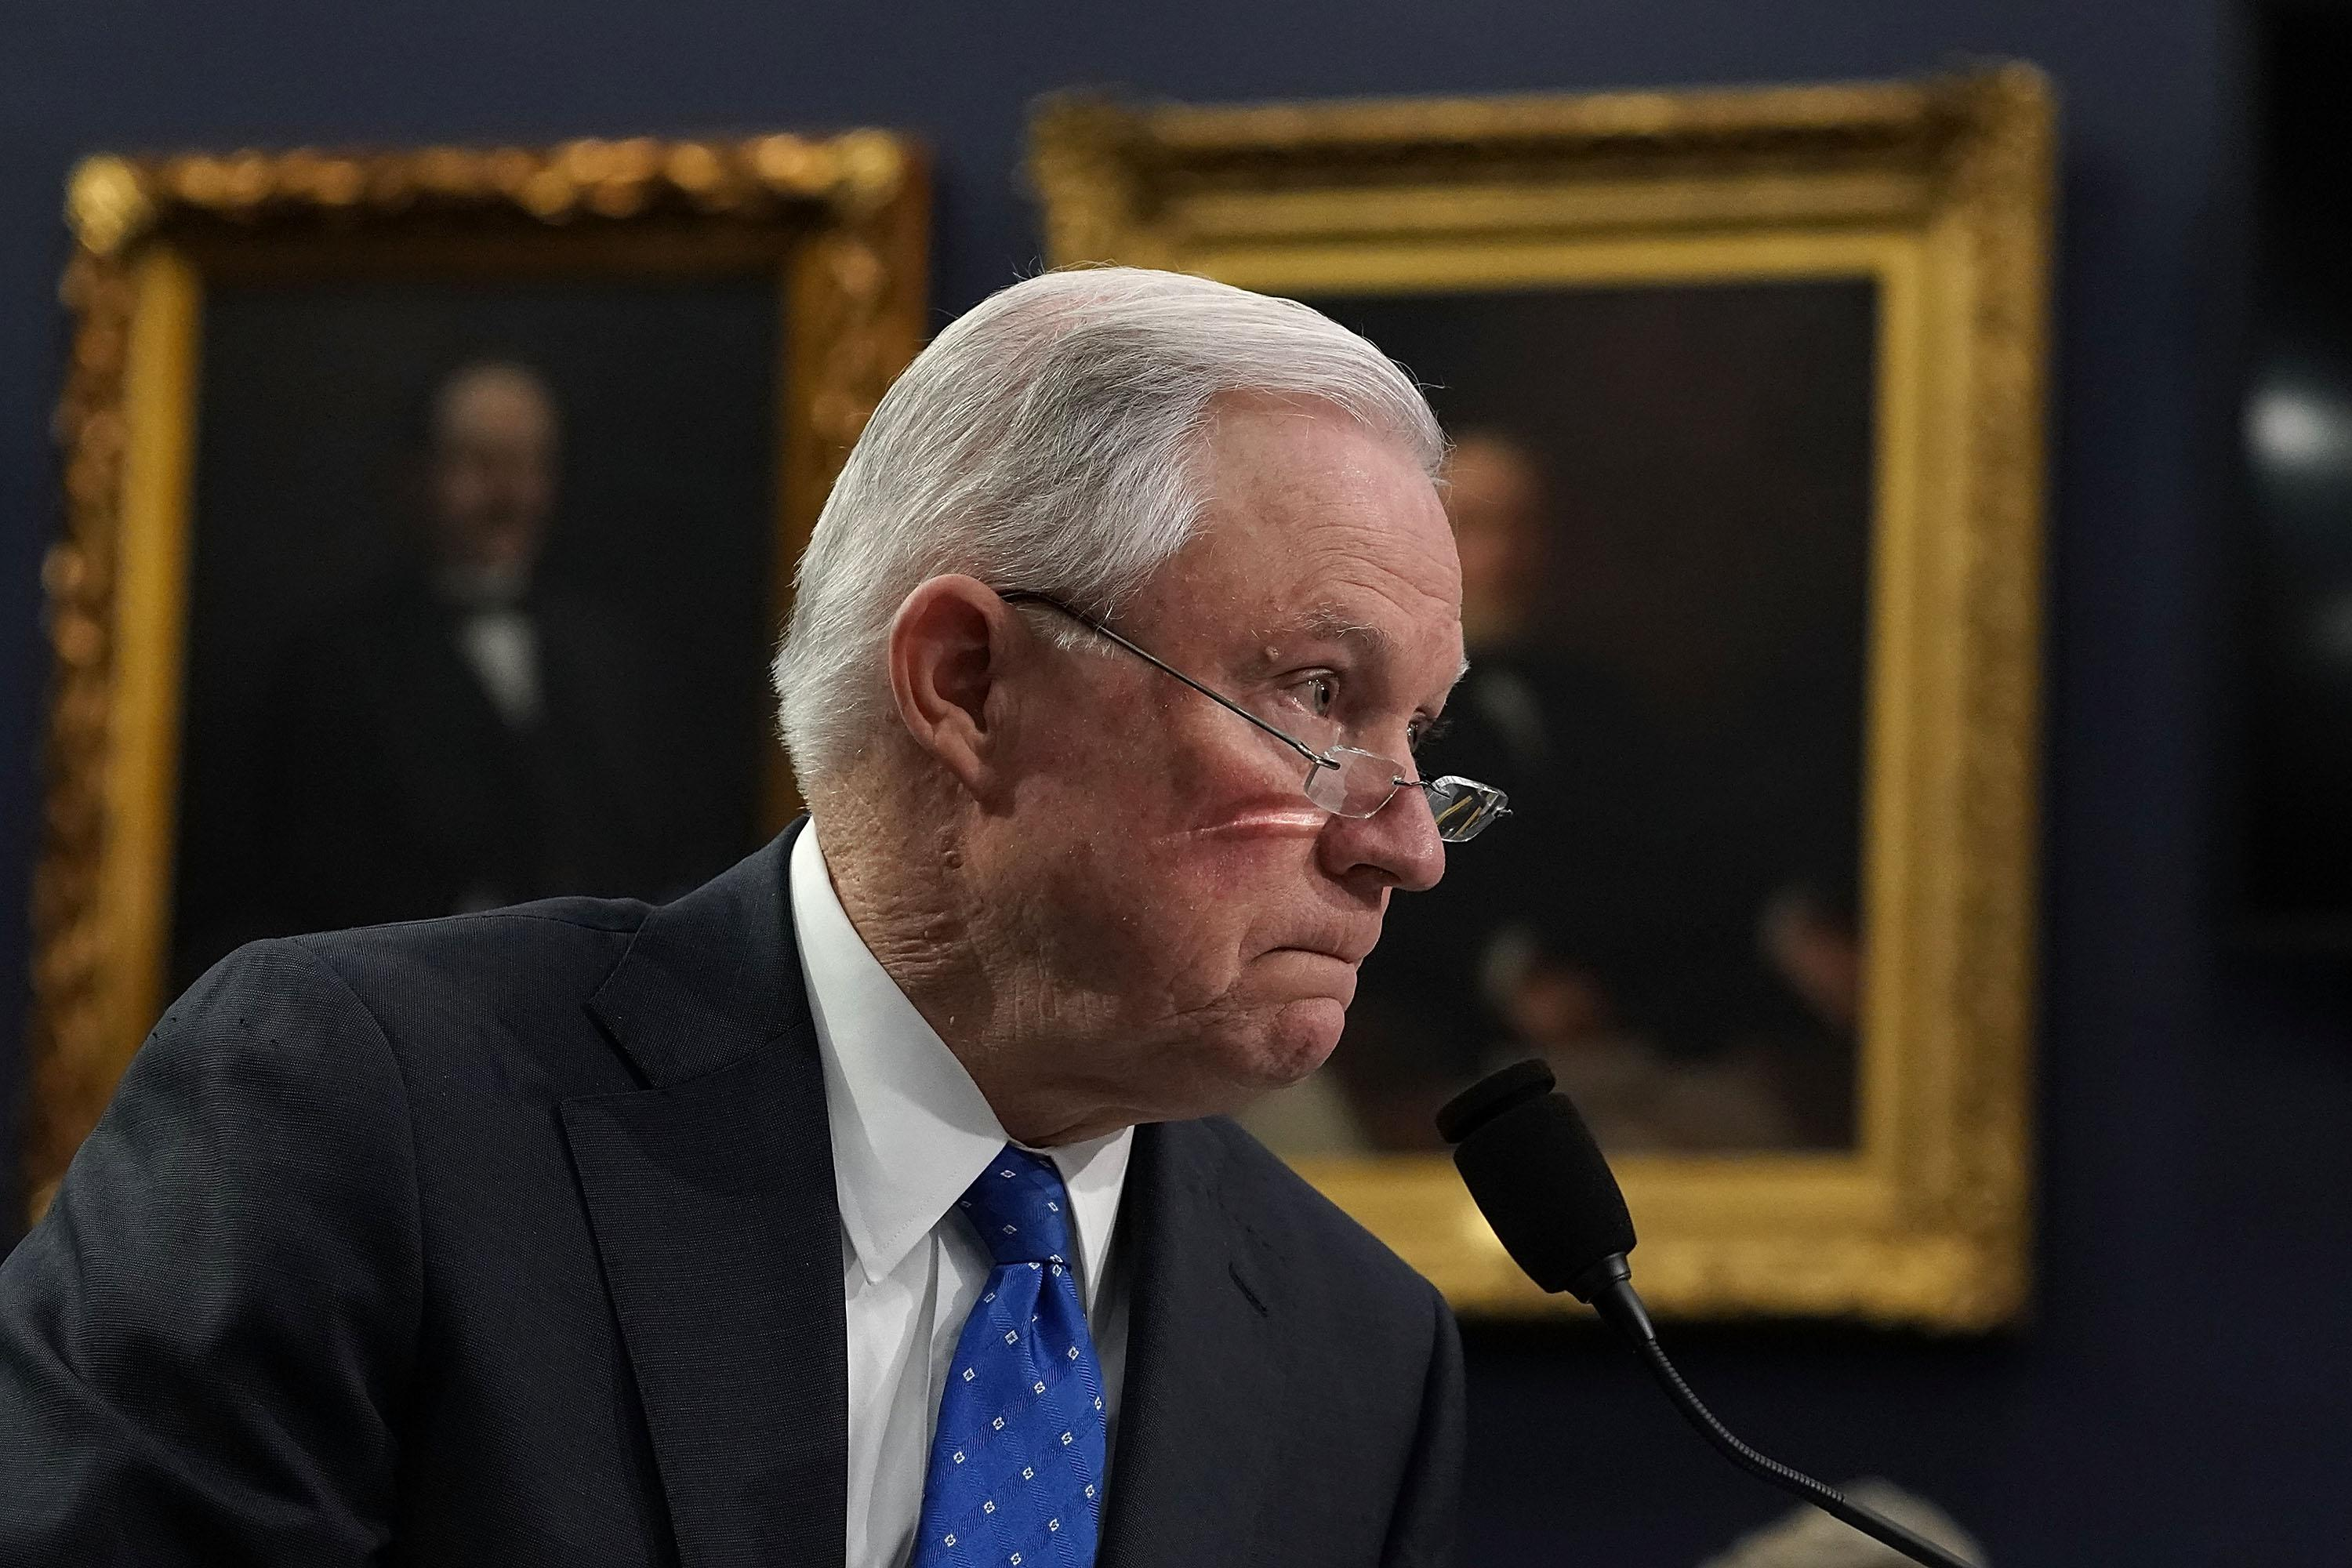 Attorney General Jeff Sessions testifies during a hearing before the Commerce, Justice, Science, and Related Agencies Subcommittee of the House Appropriations Committee on April 26, 2018 on Capitol Hill in Washington, D.C.